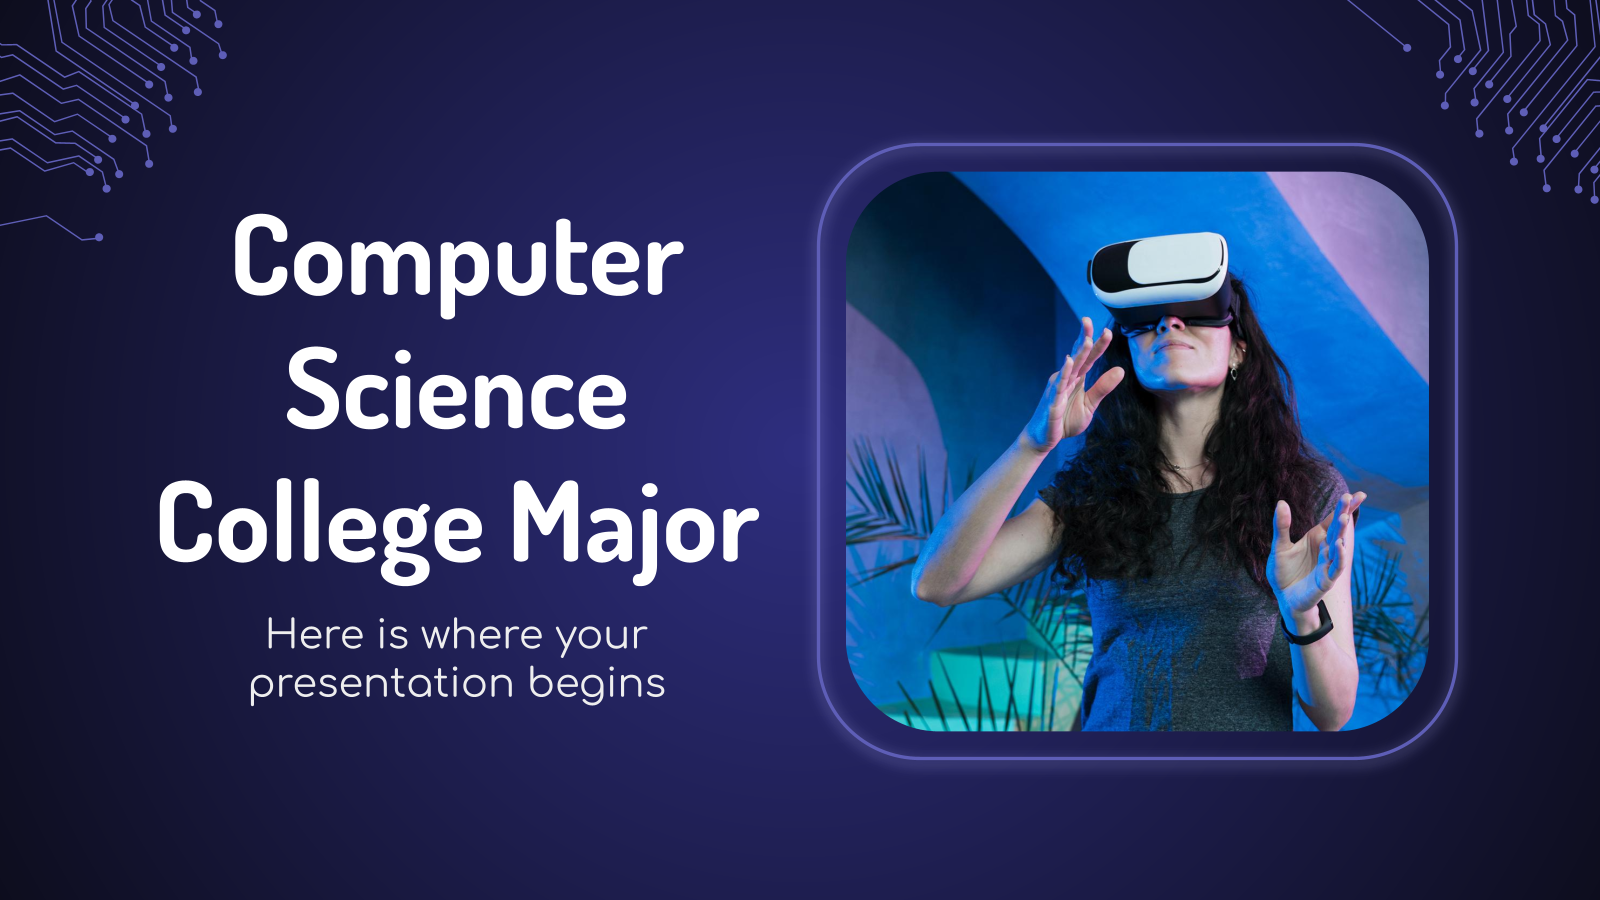 Computer Science College Major presentation template